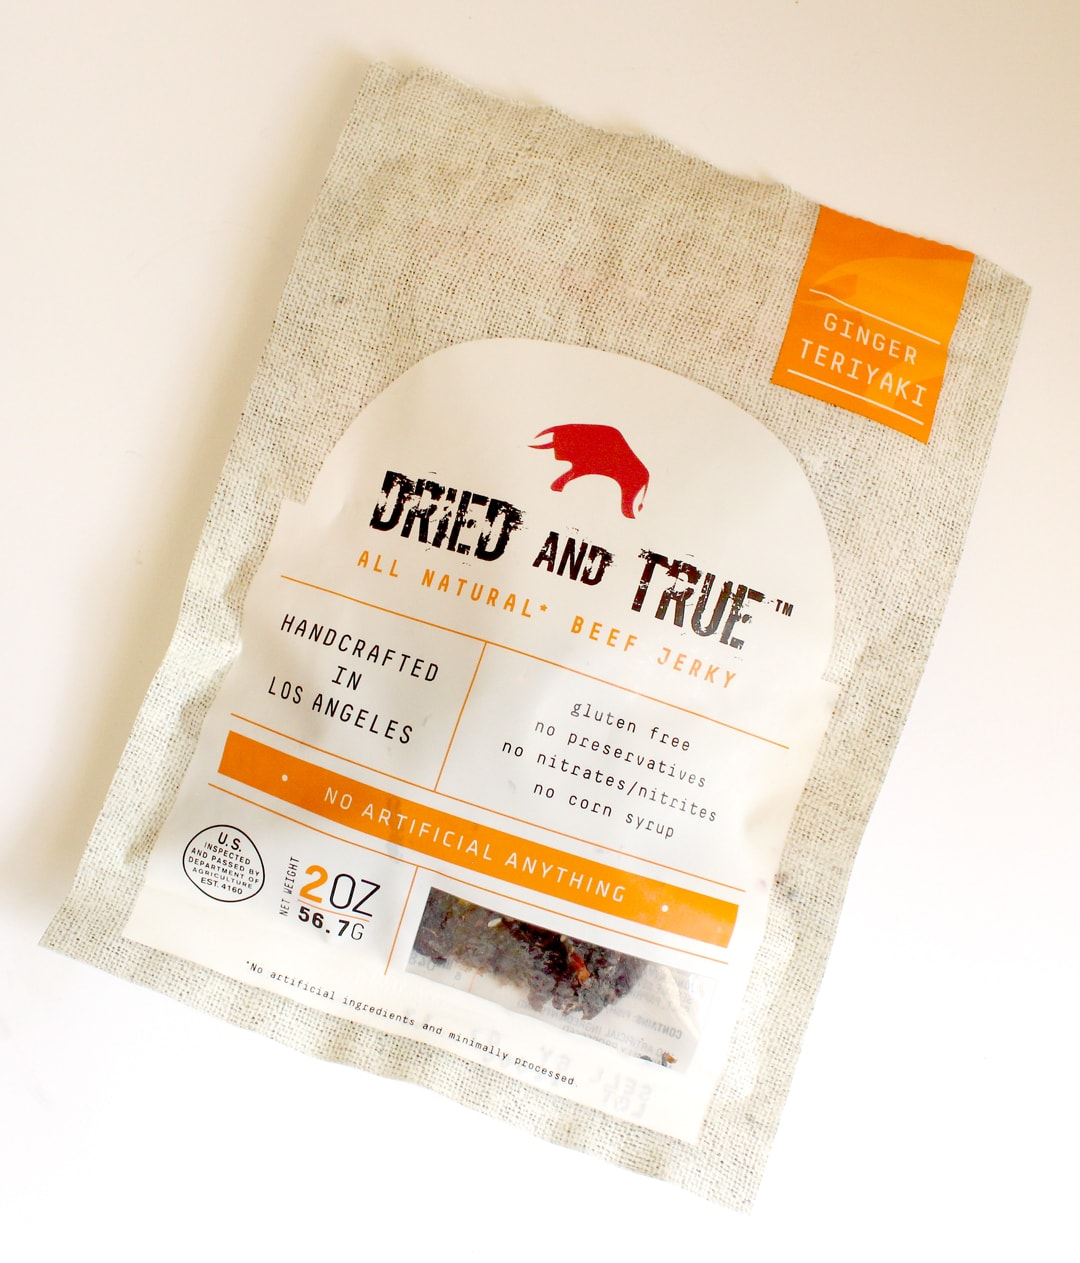 Dried & True Ginger Teriyaki Beef Jerky